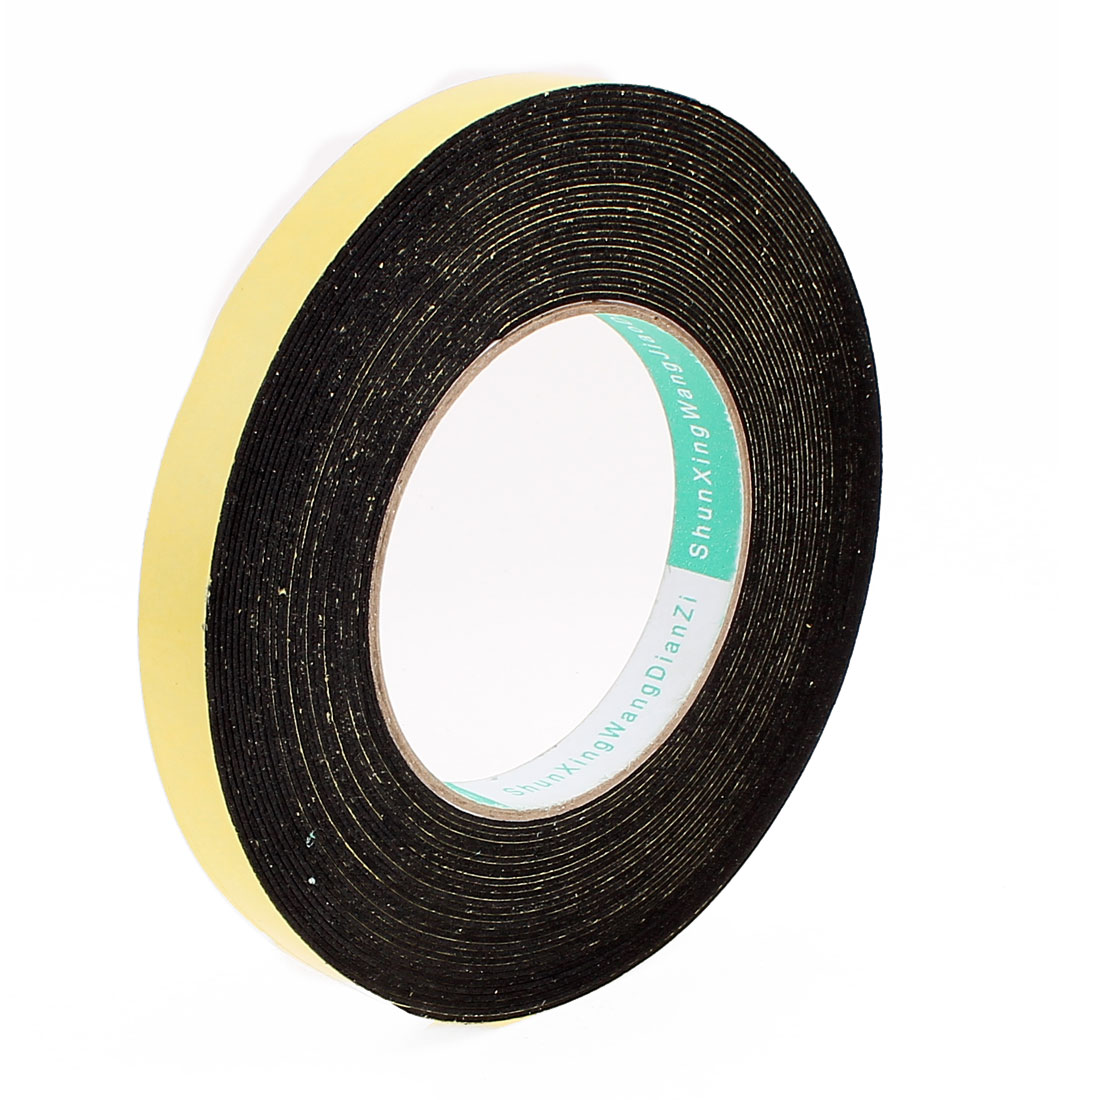 10 Meters 15mm x 1mm Single Side Adhesive EVA Foam Sealing Tap